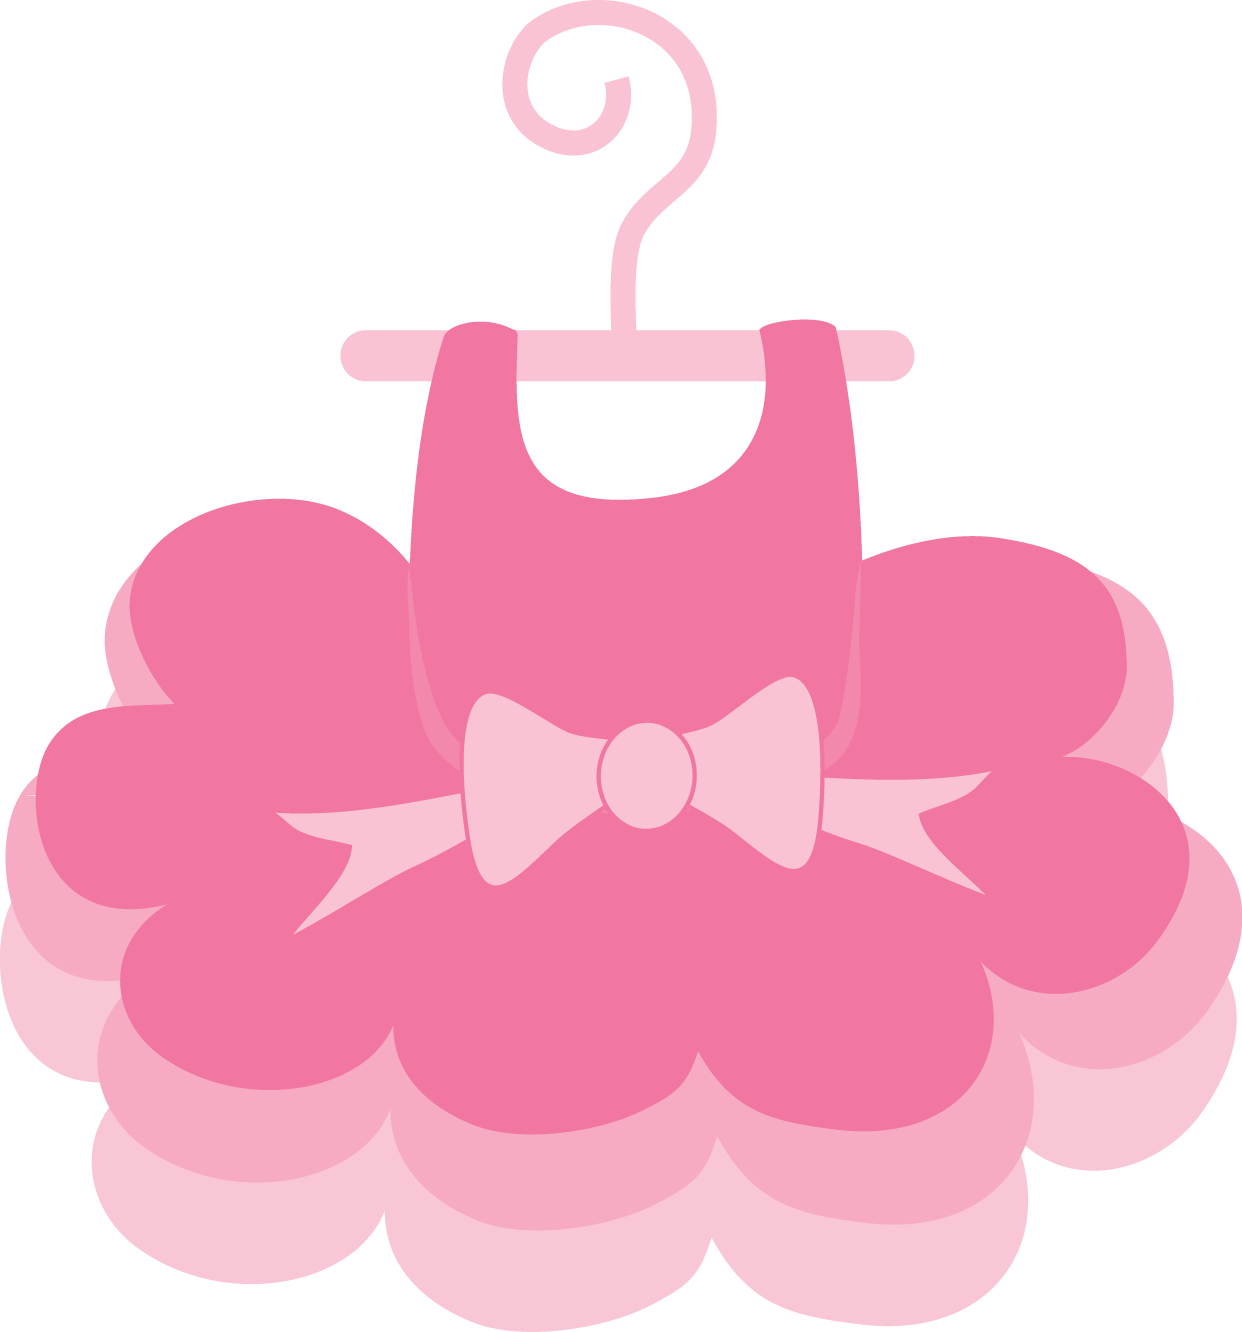 Costume clipart pink, Costume pink Transparent FREE for.